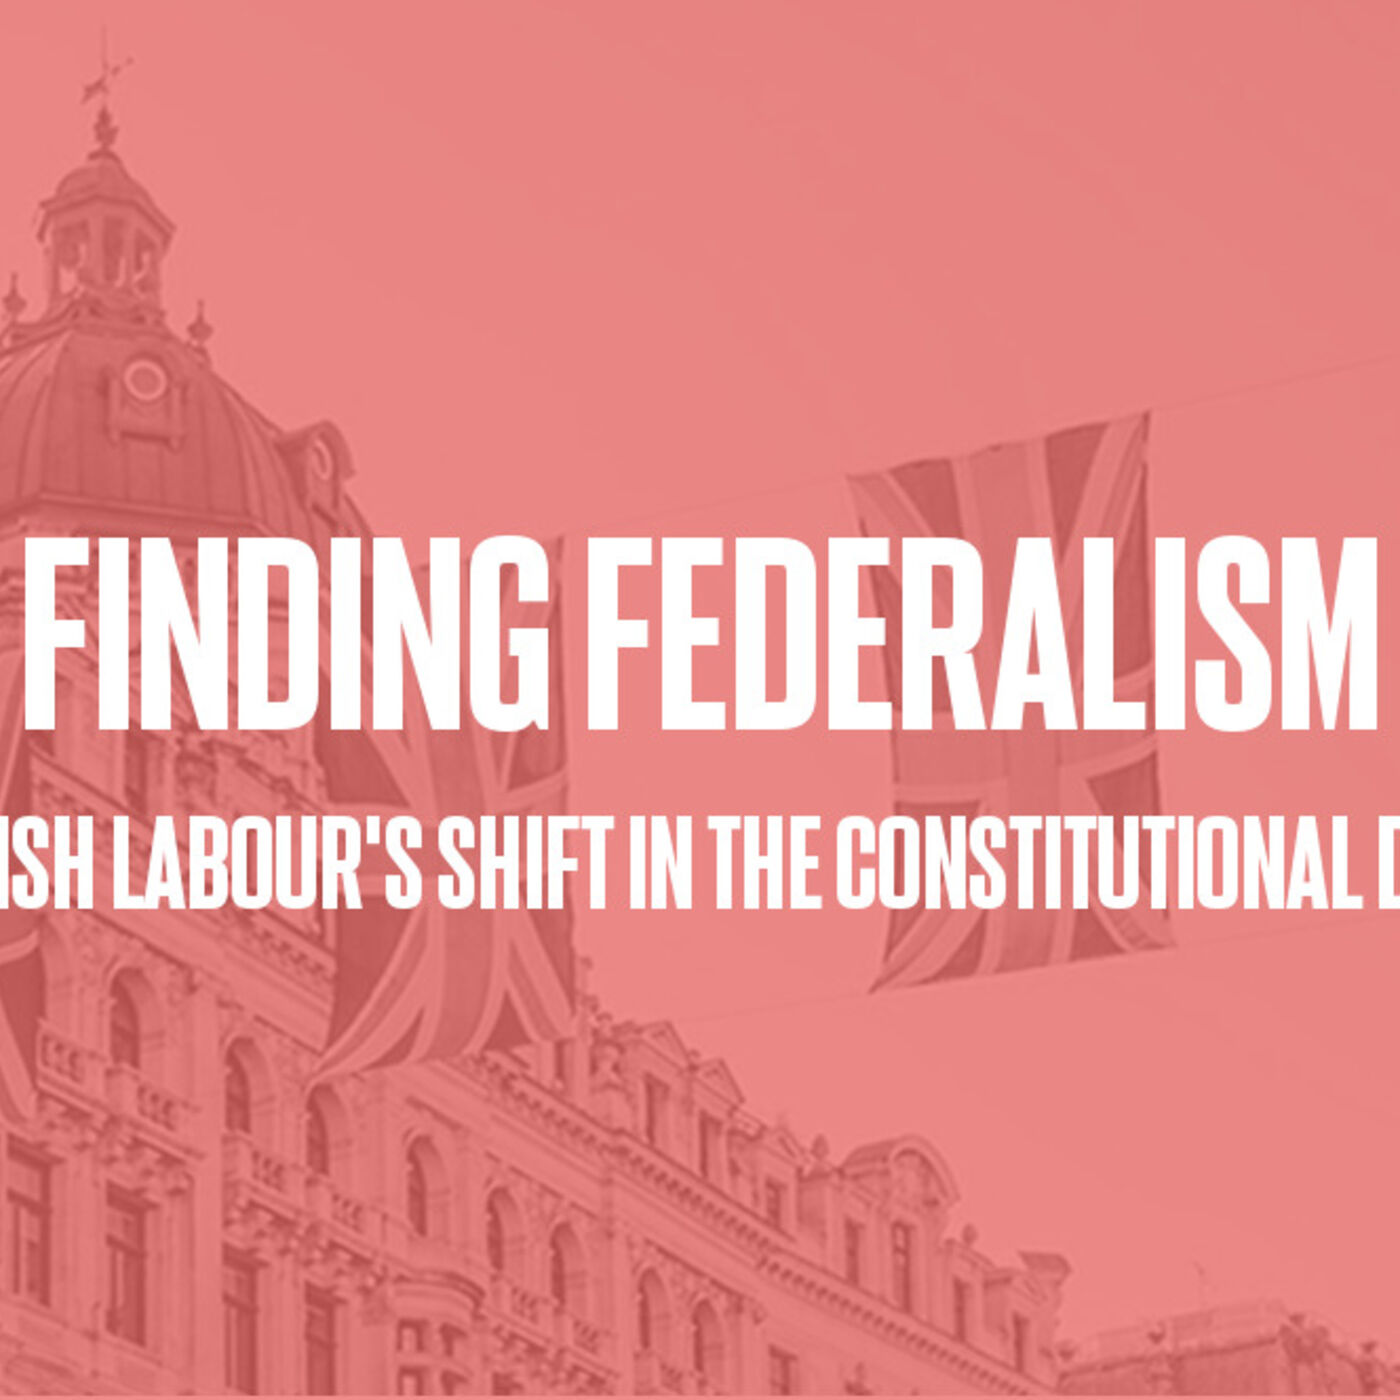 Episode #33 - Finding Federalism